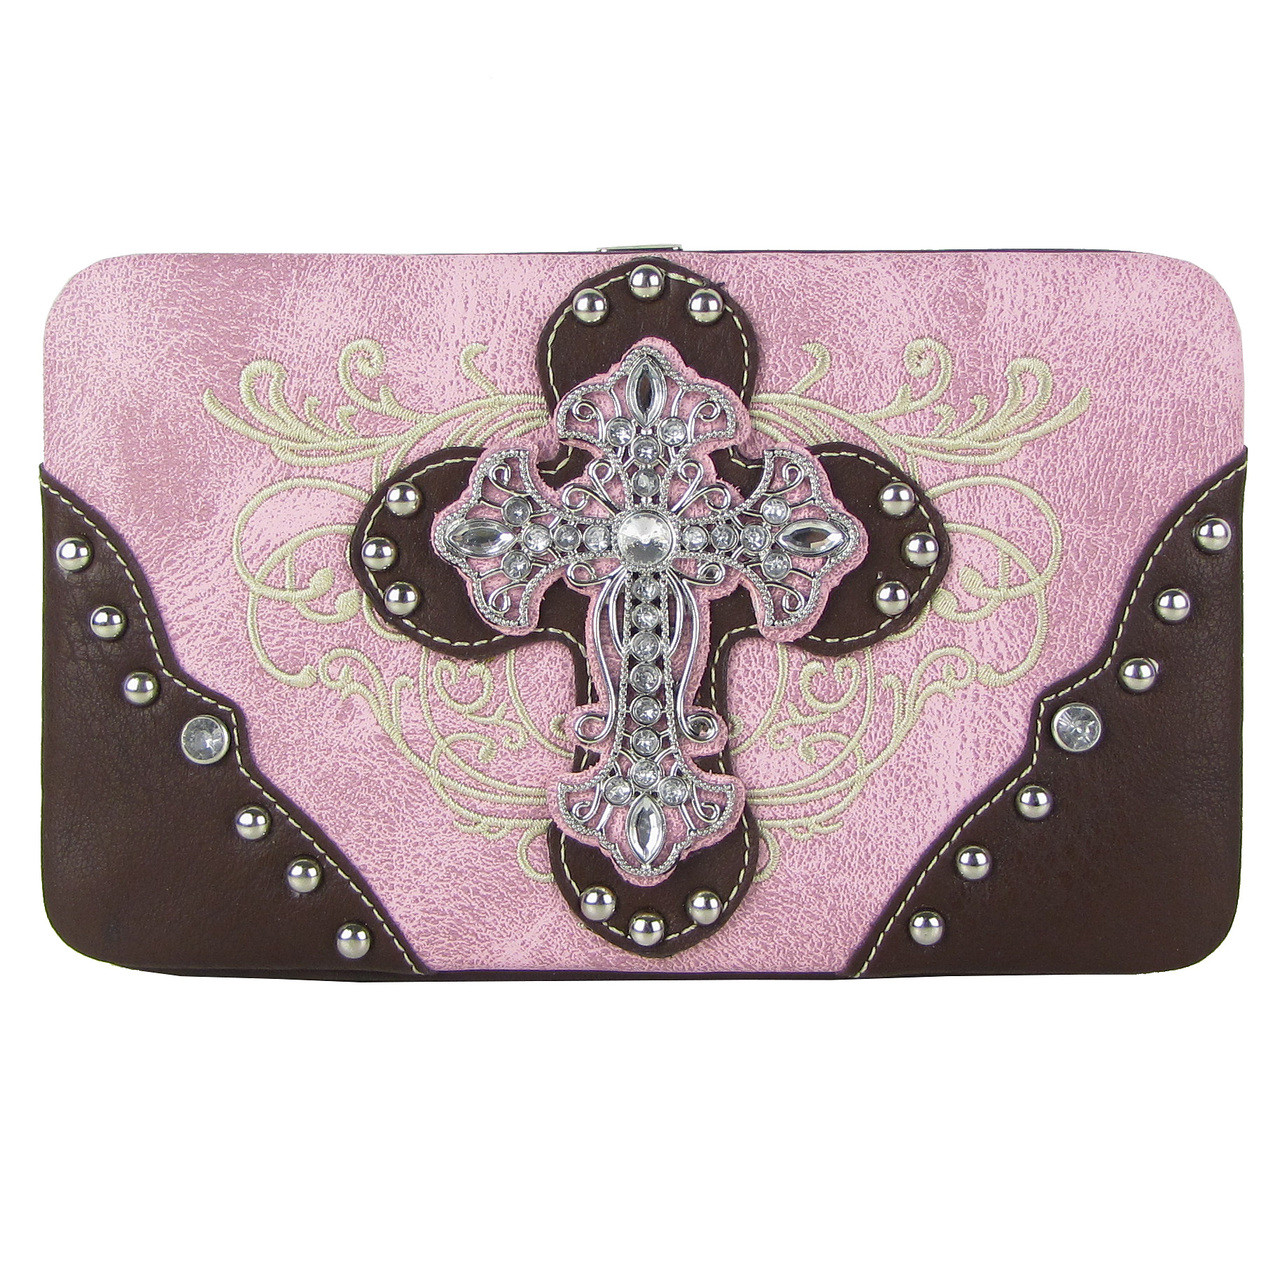 PINK WESTERN RHINESTONE CROSS TOOLED FLAT THICK WALLET FW2-0477LPK